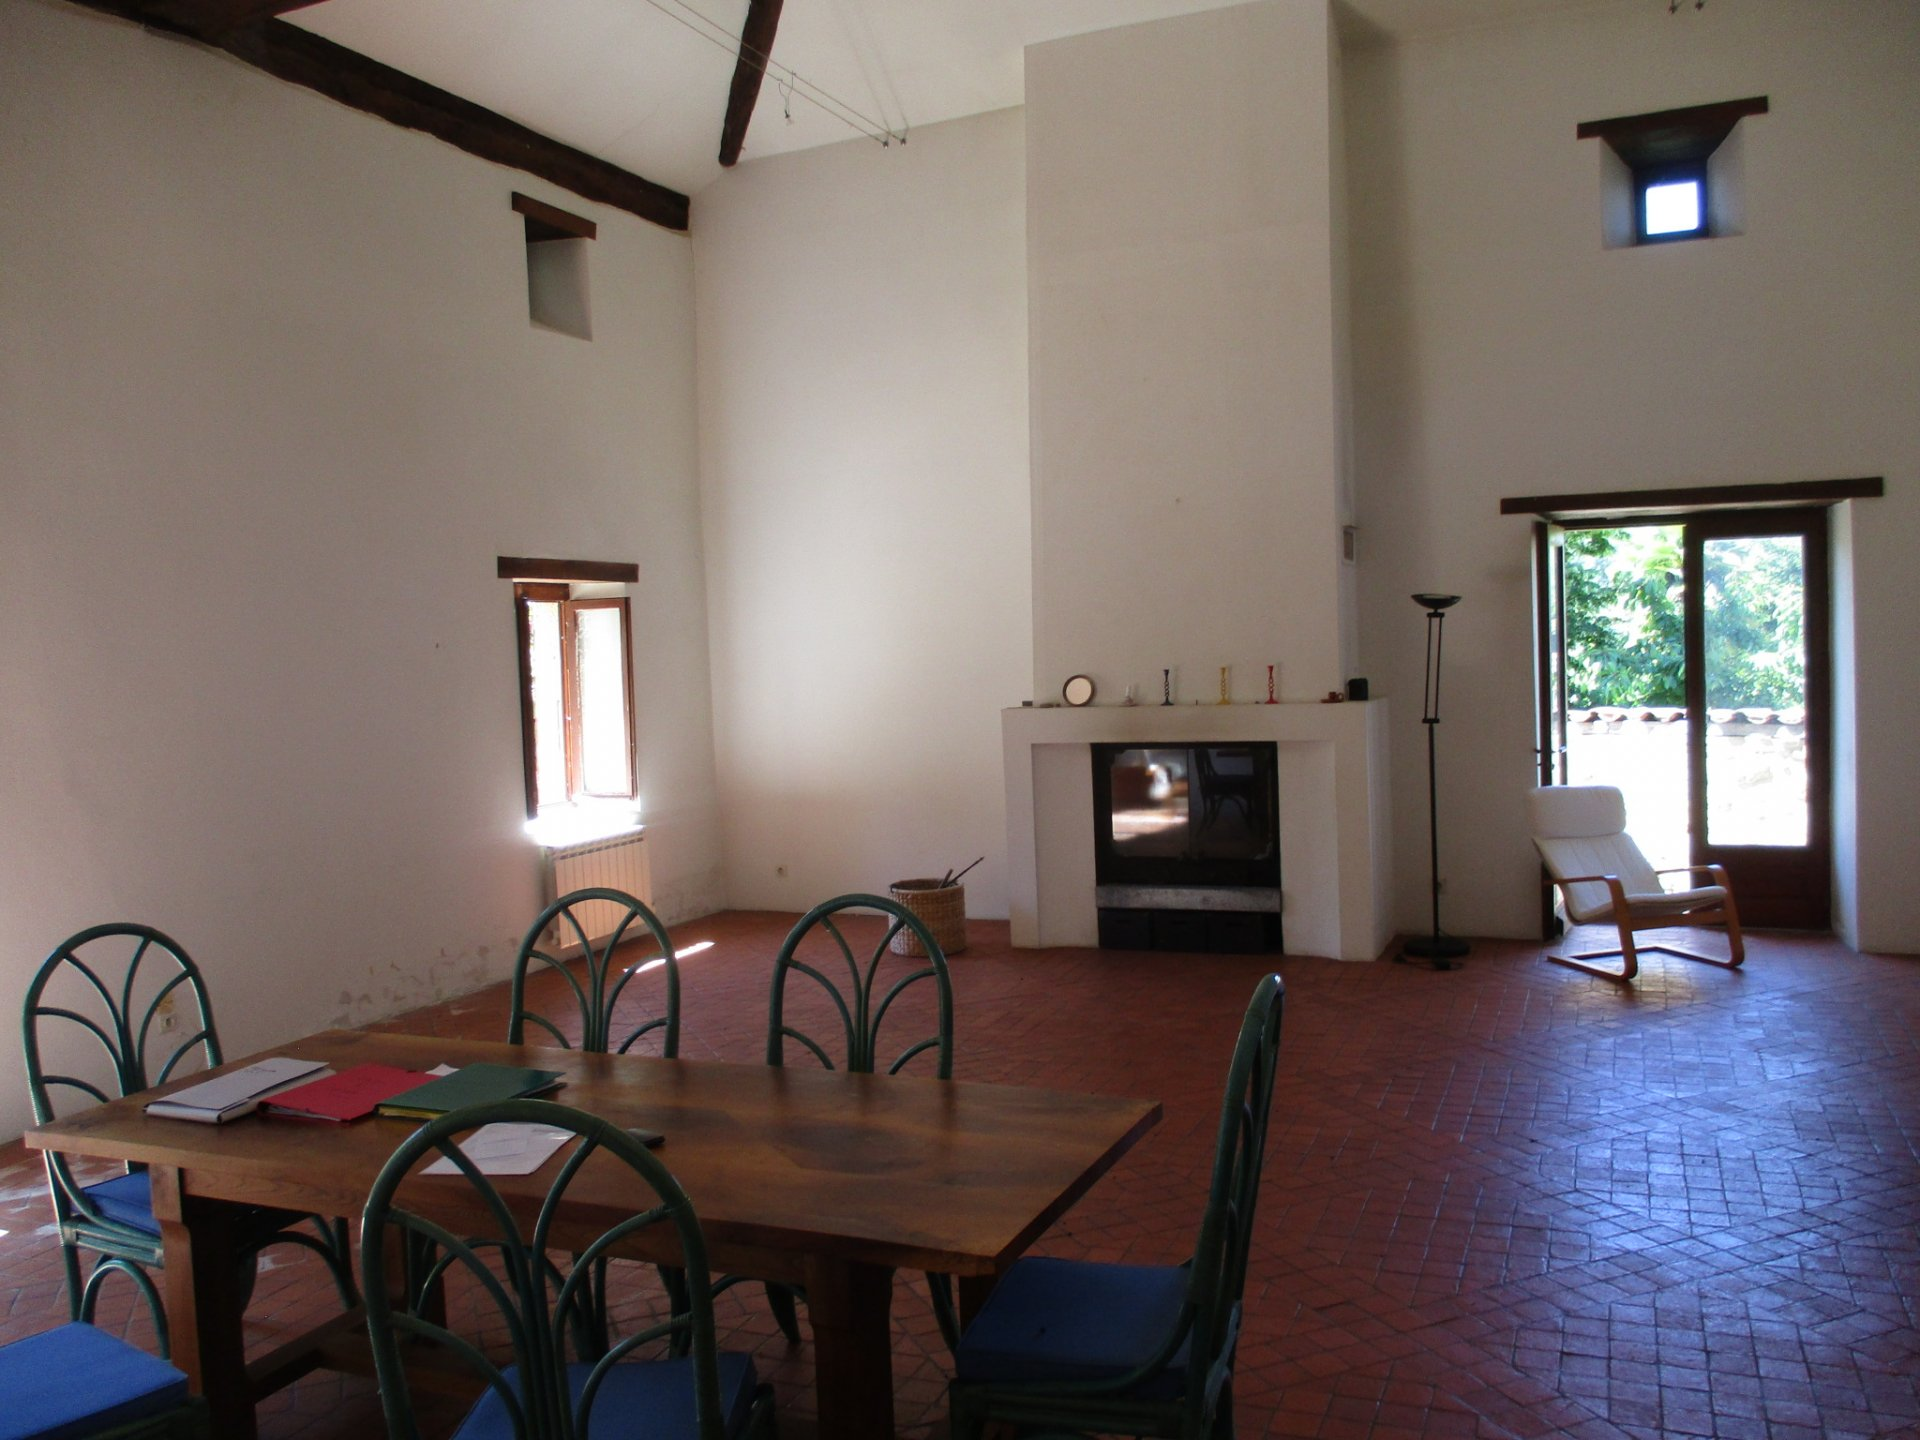 Bright and spacious stone house, outbuildings, 3,000 m² of land in the Perigord area, Dordogne